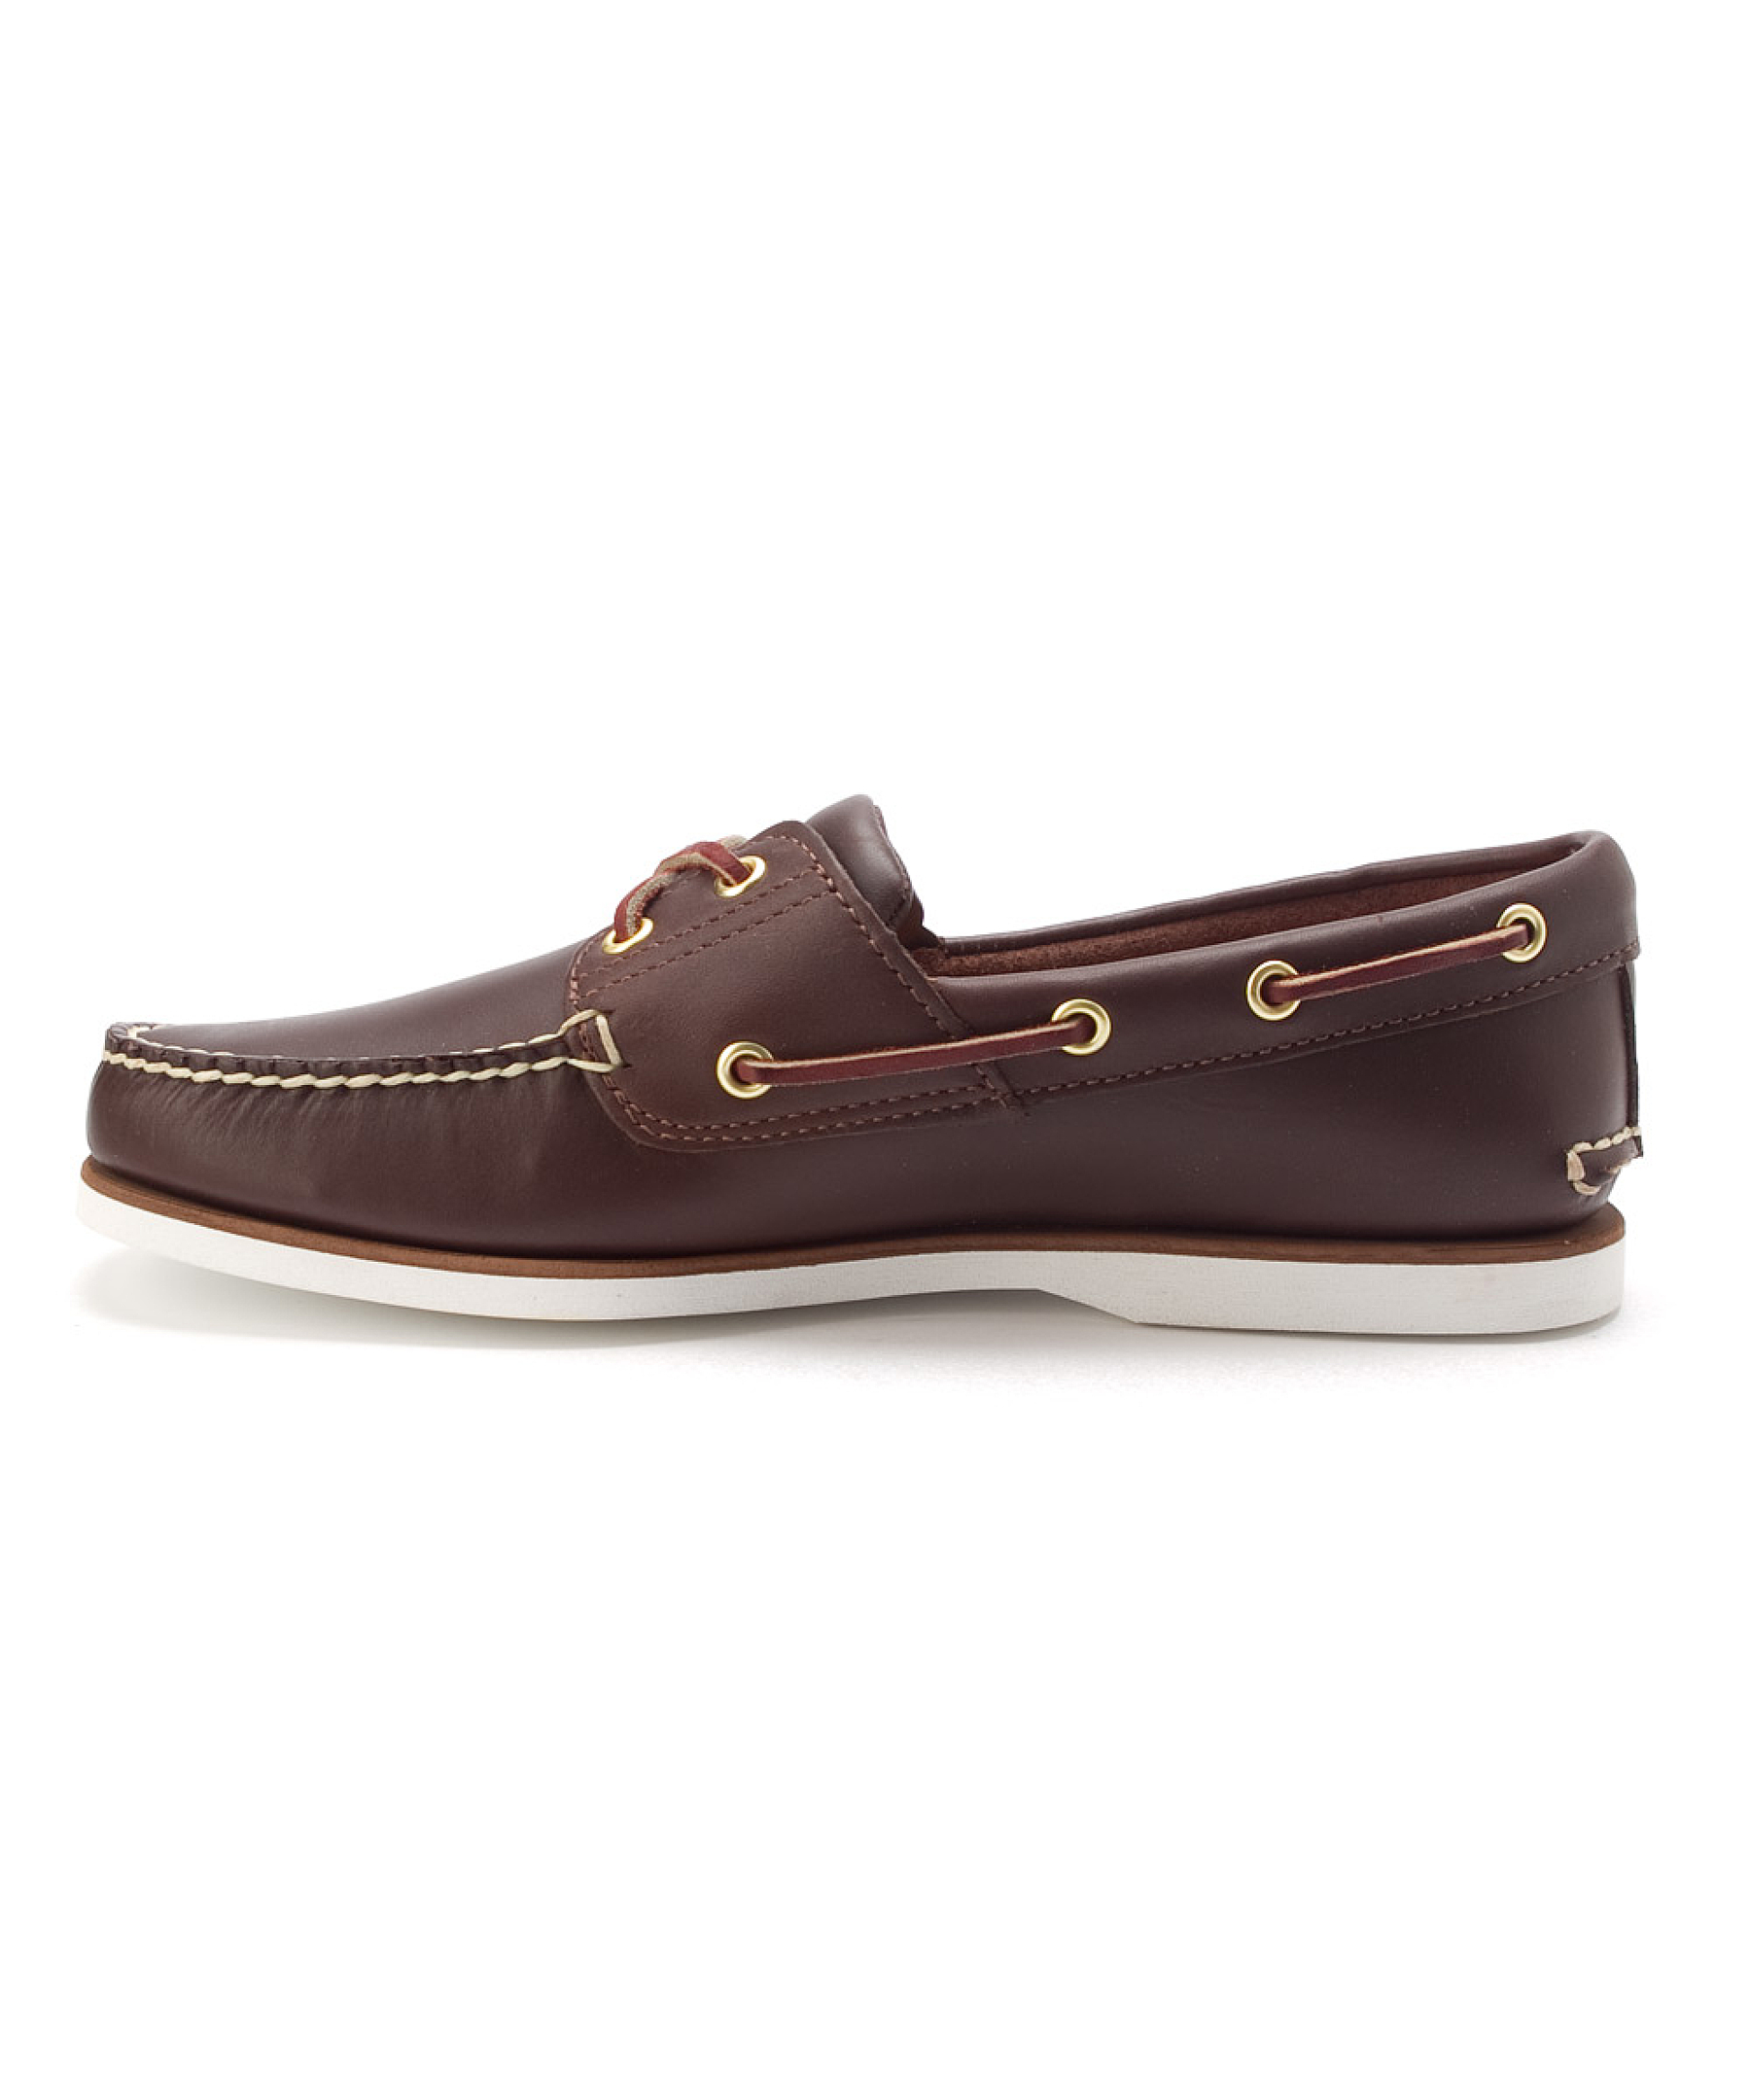 Lyst - Timberland Menu0026#39;s U00c2u00ae Icon 2-eye Boat Athletic Boating Shoes In Brown For Men